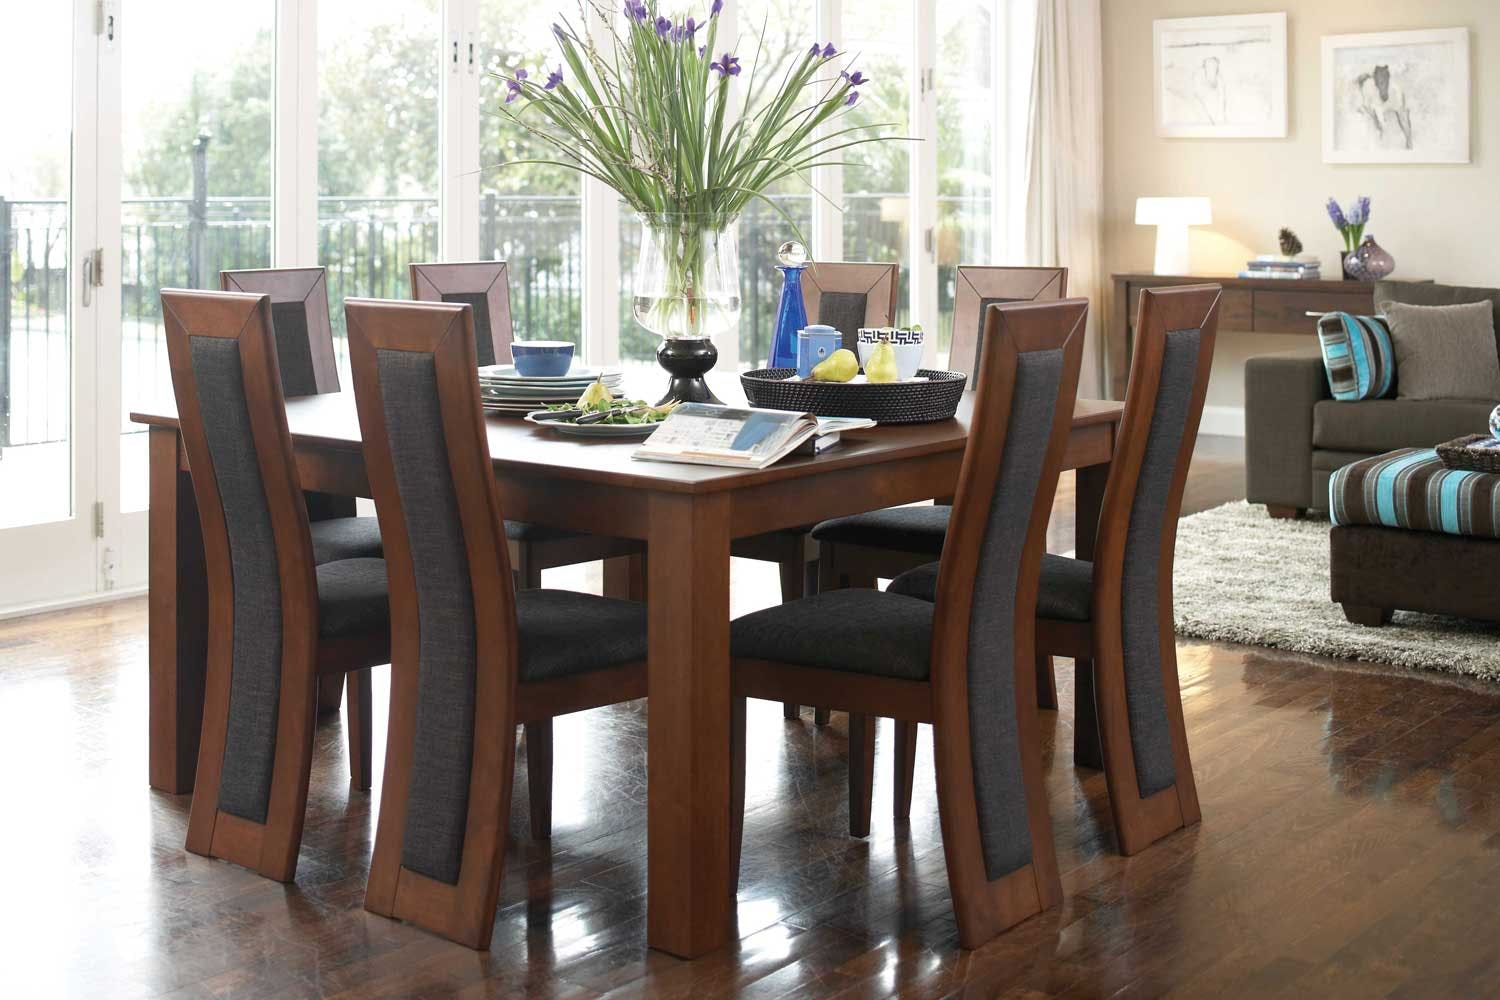 Monte cristo 9 piece dining suite by john young furniture for Dining room tables harvey norman